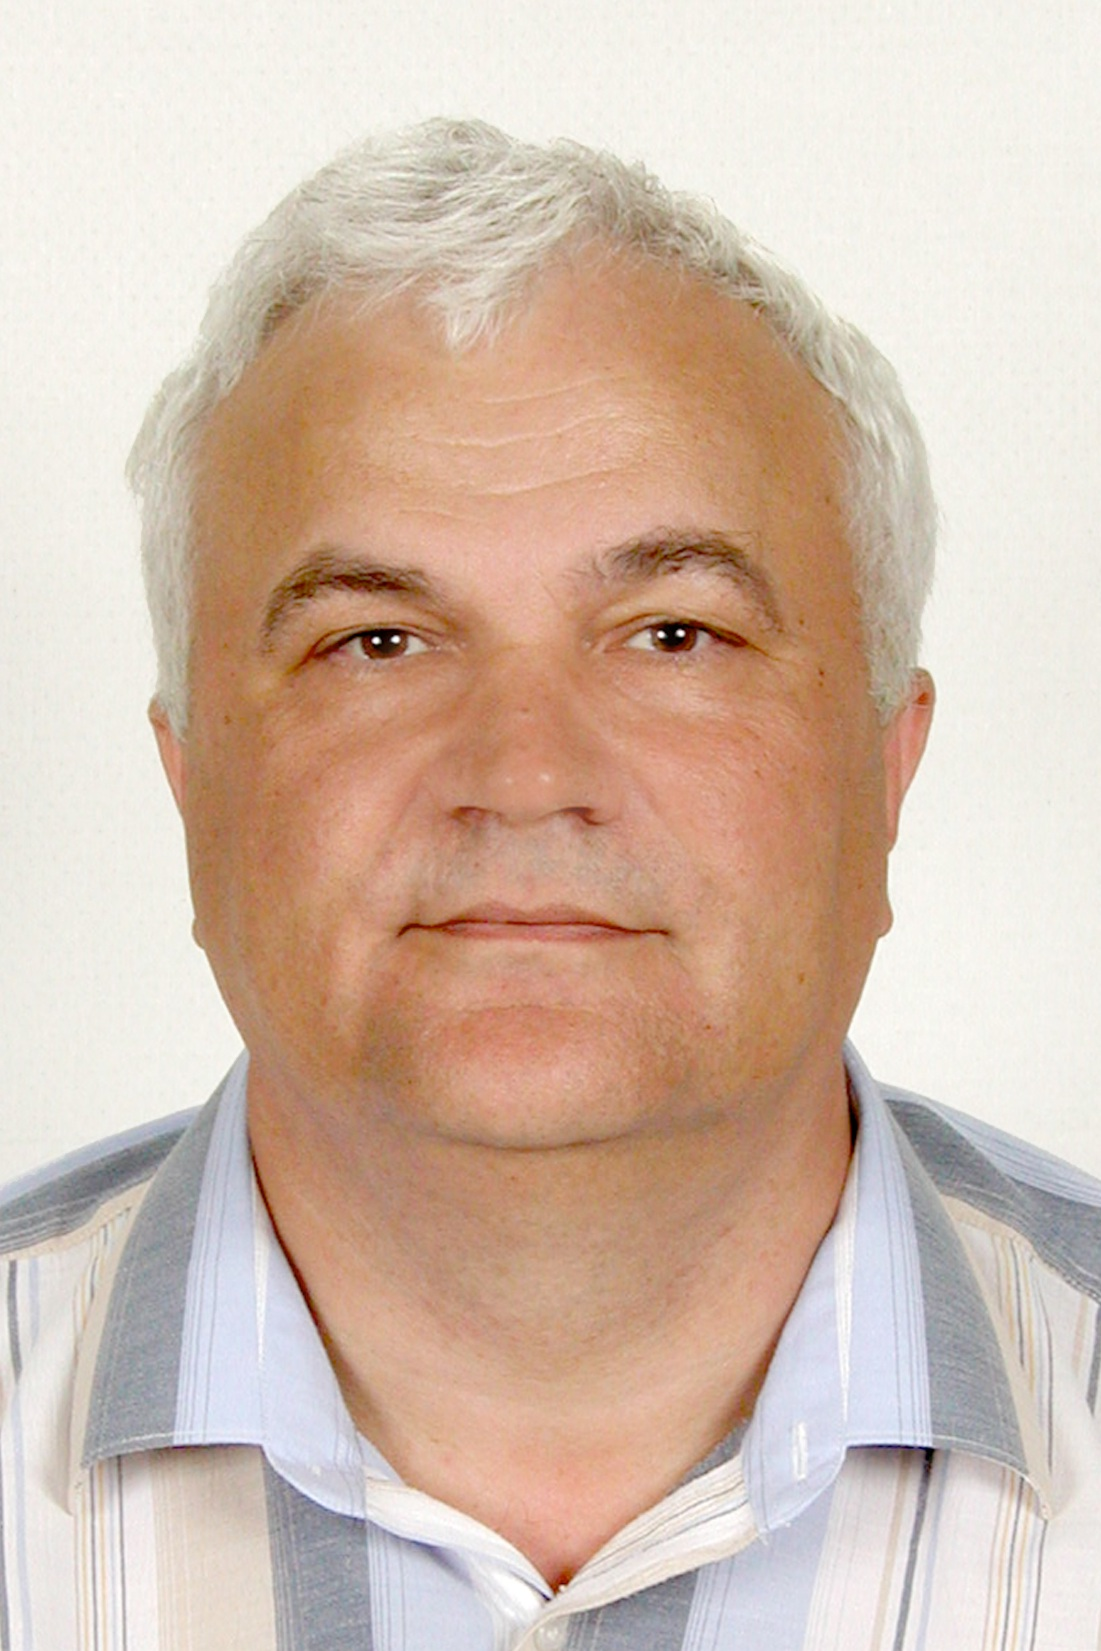 Photo of Aleksandr Vasilevich Efanov